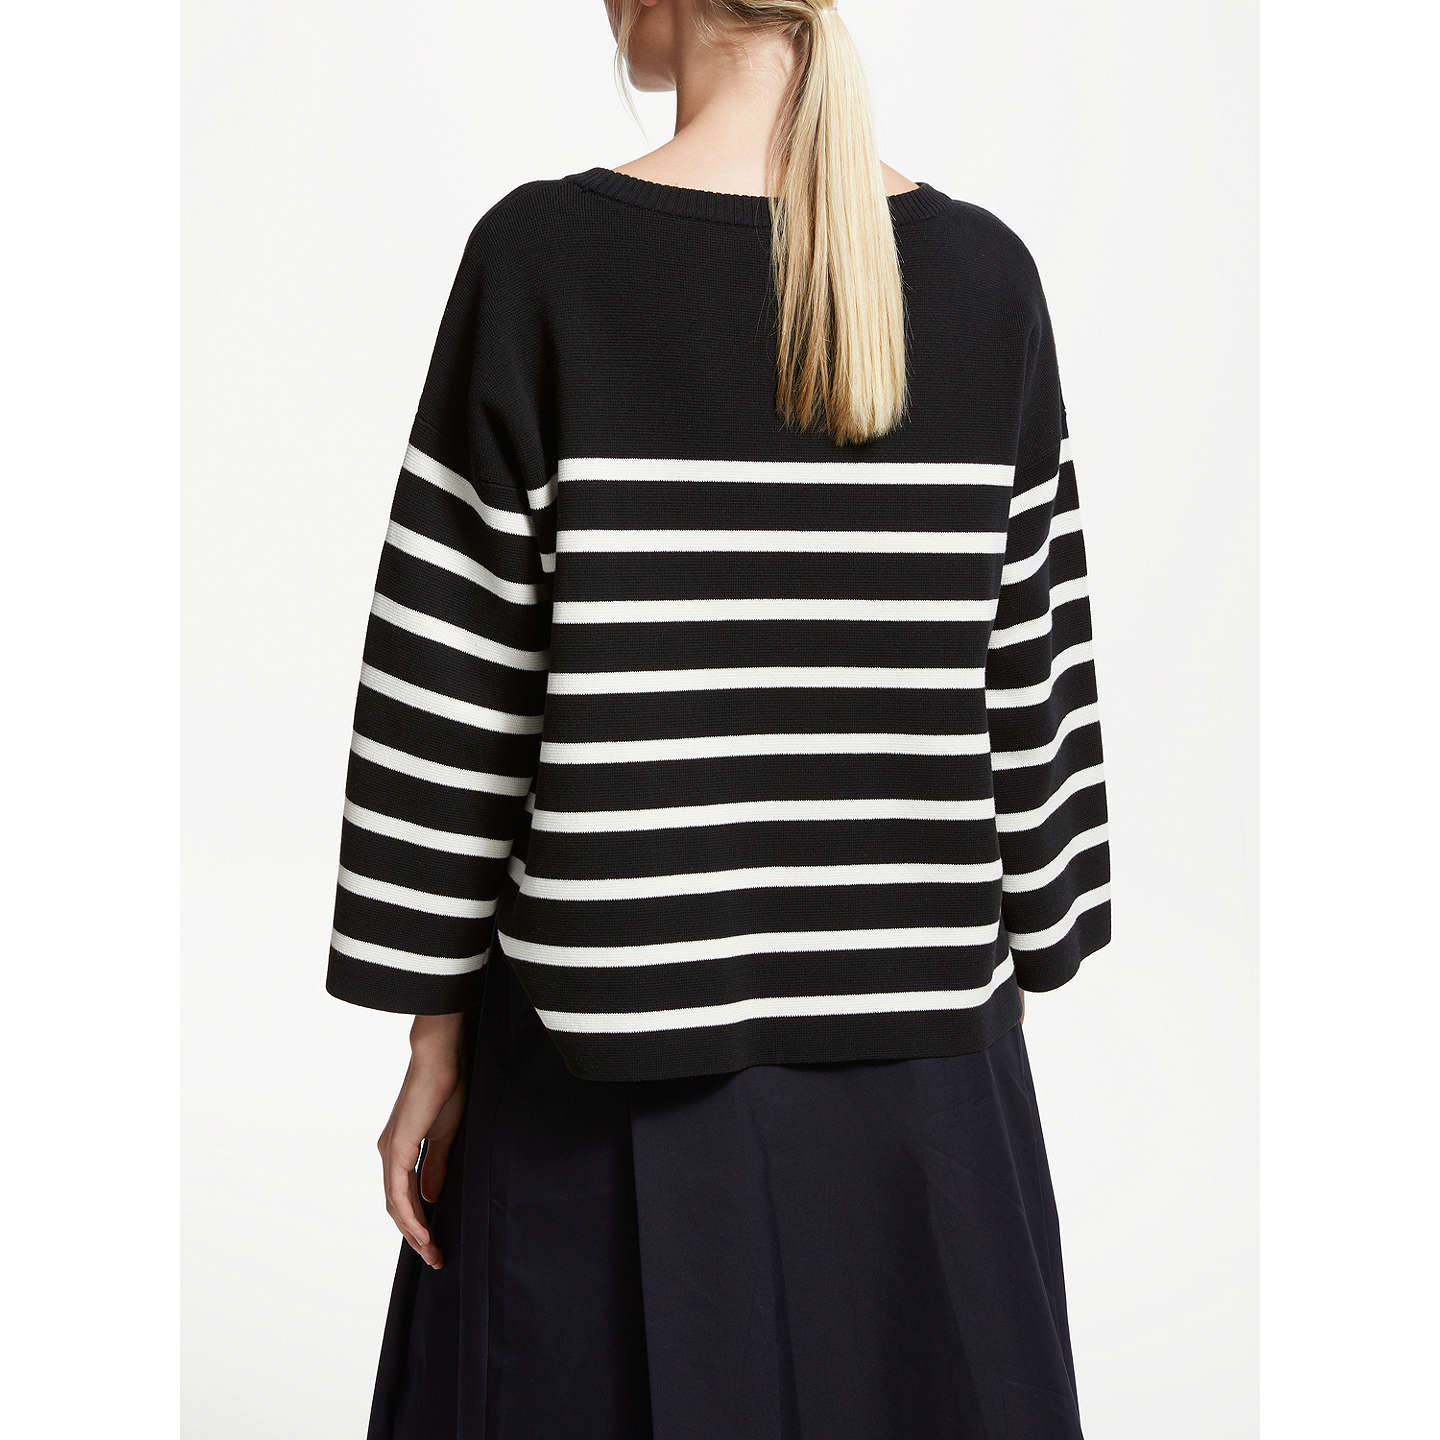 BuyKin by John Lewis Milano Cotton Boat Neck Jumper, Black, S Online at johnlewis.com